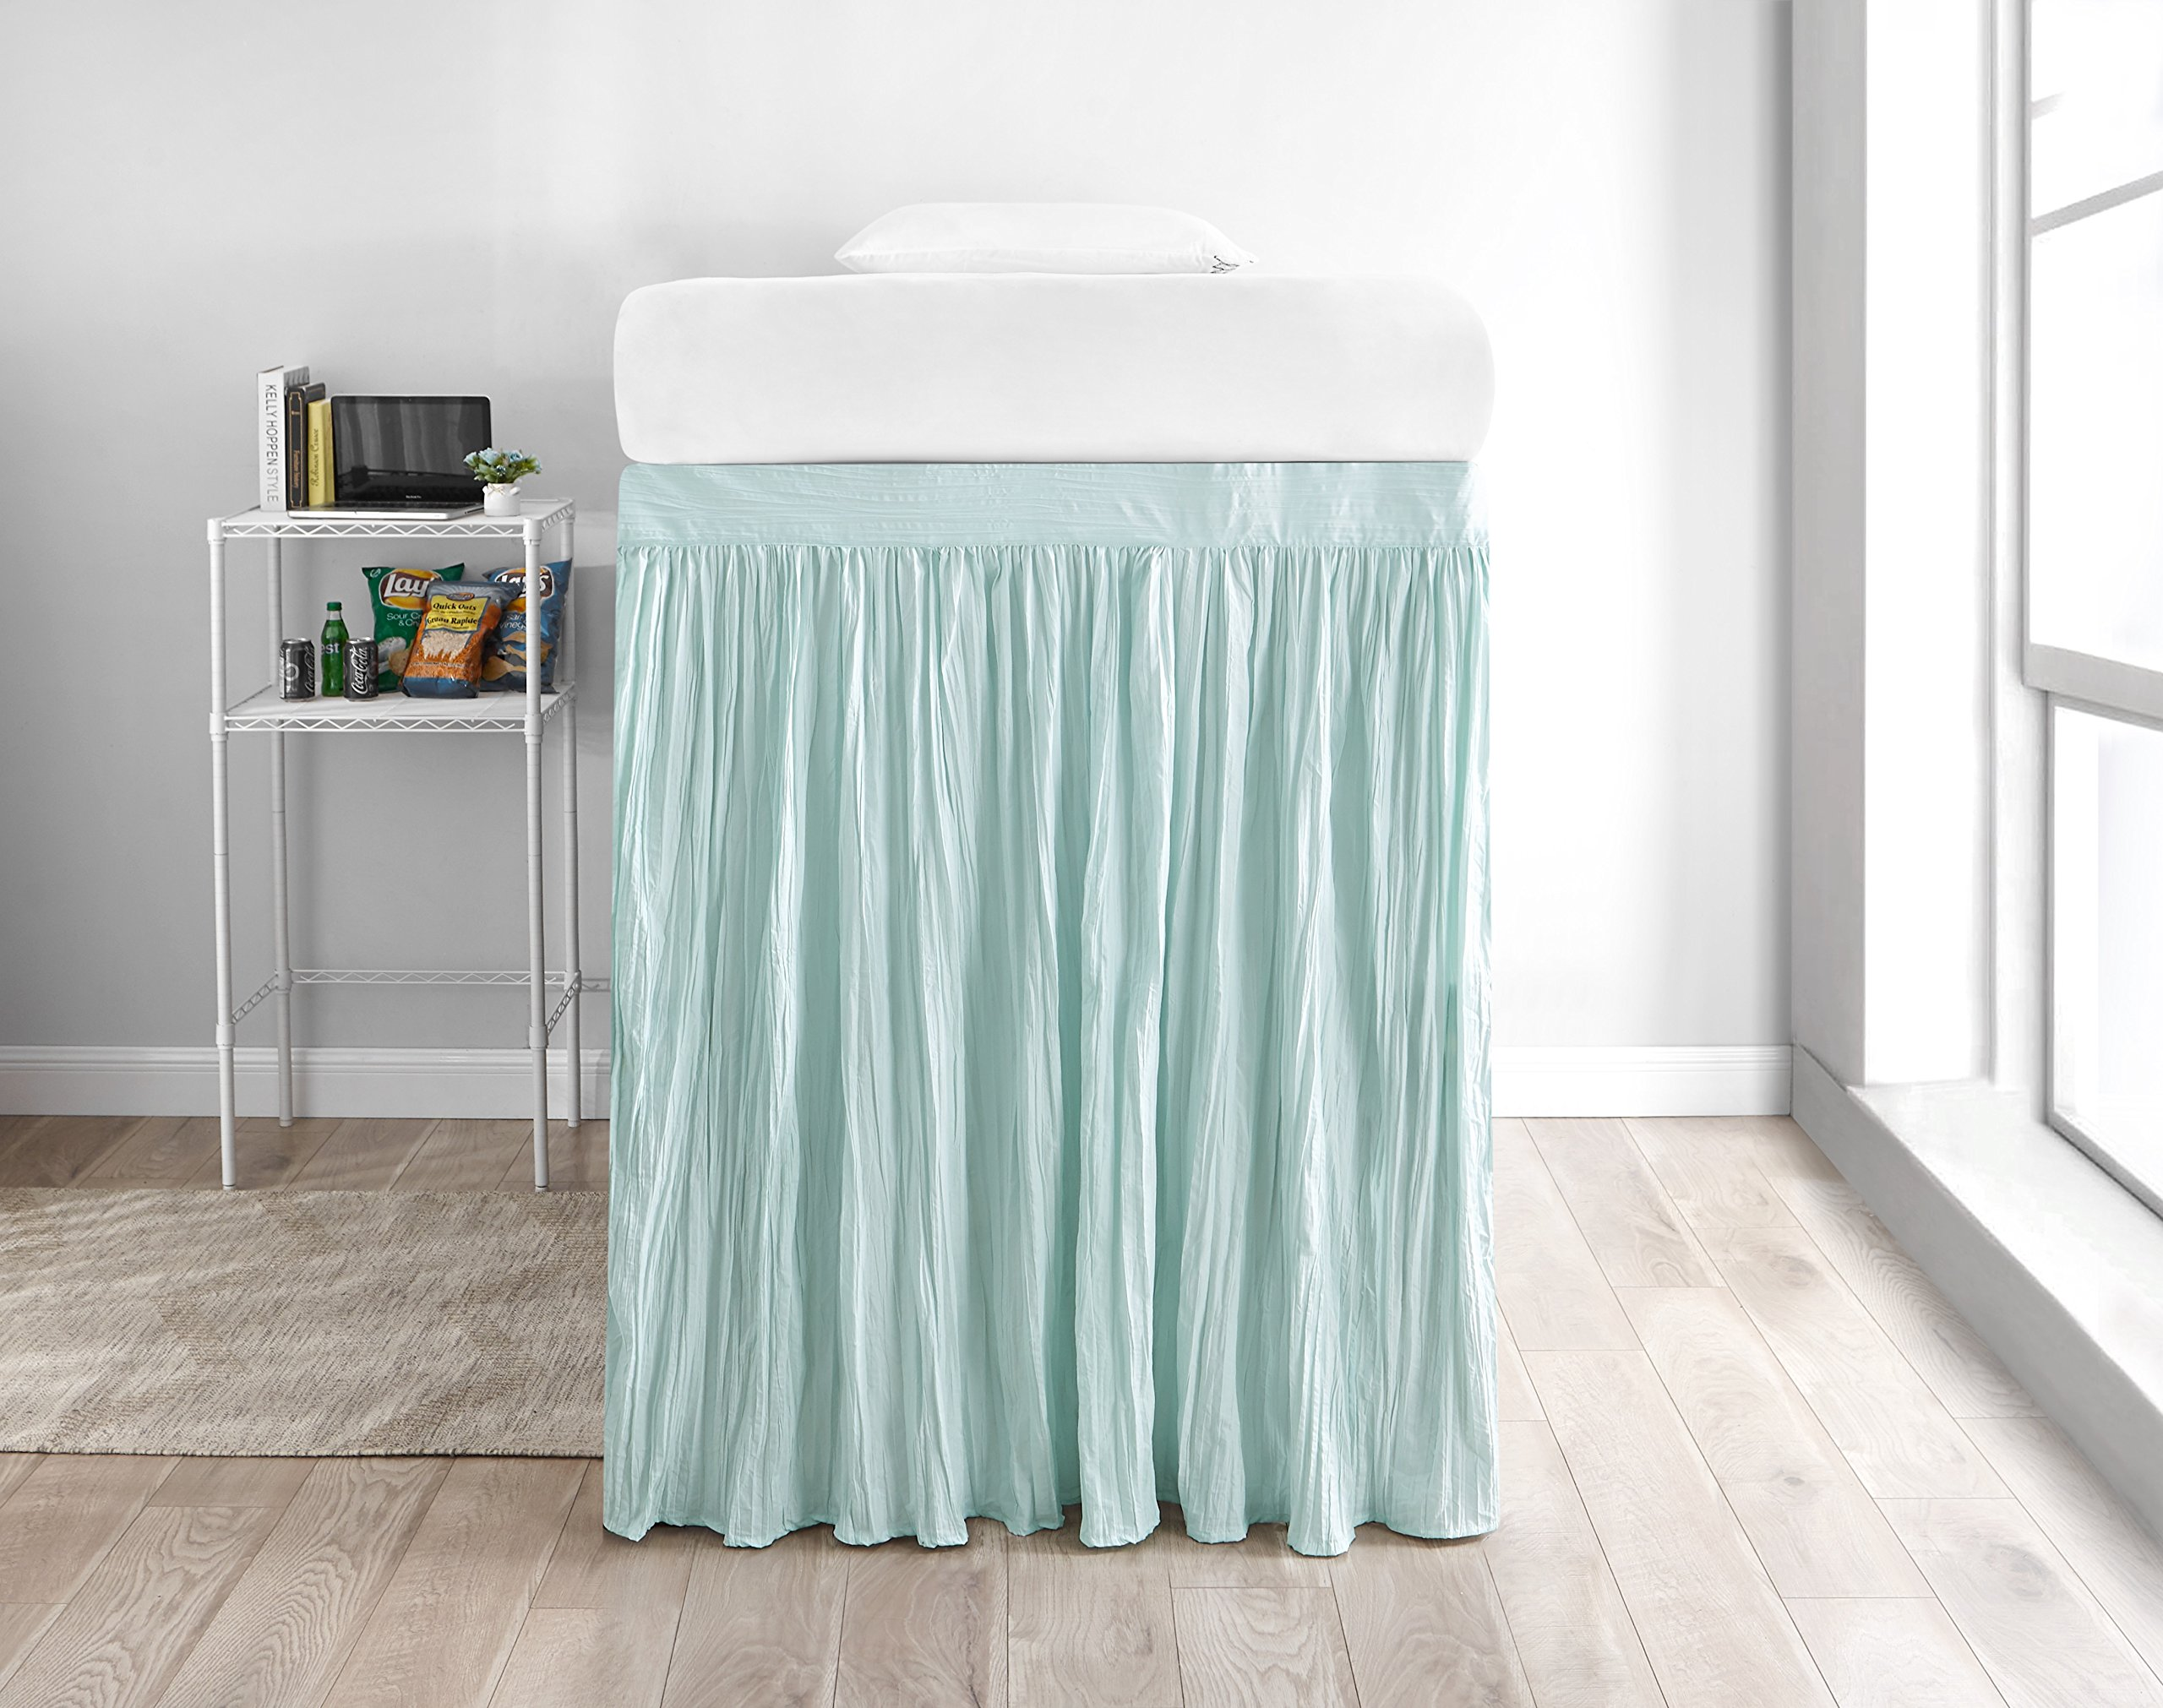 Crinkle Extended Dorm Sized Bed Skirt Panel with Ties (1 Panel) - Hint of Mint (For raised or lofted beds)